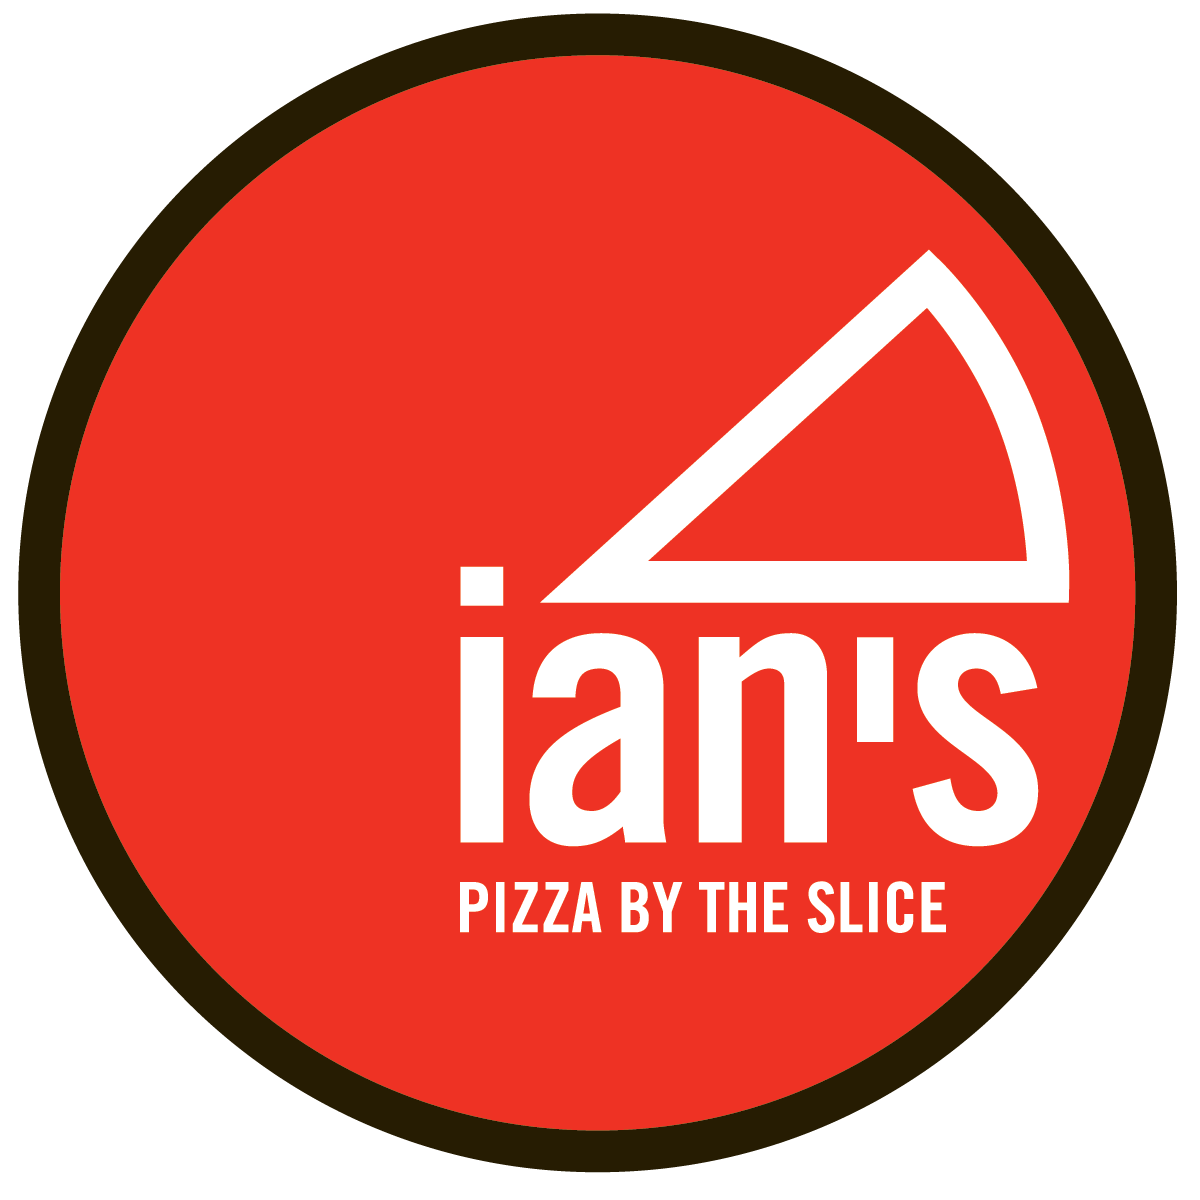 Ian's Pizza on State